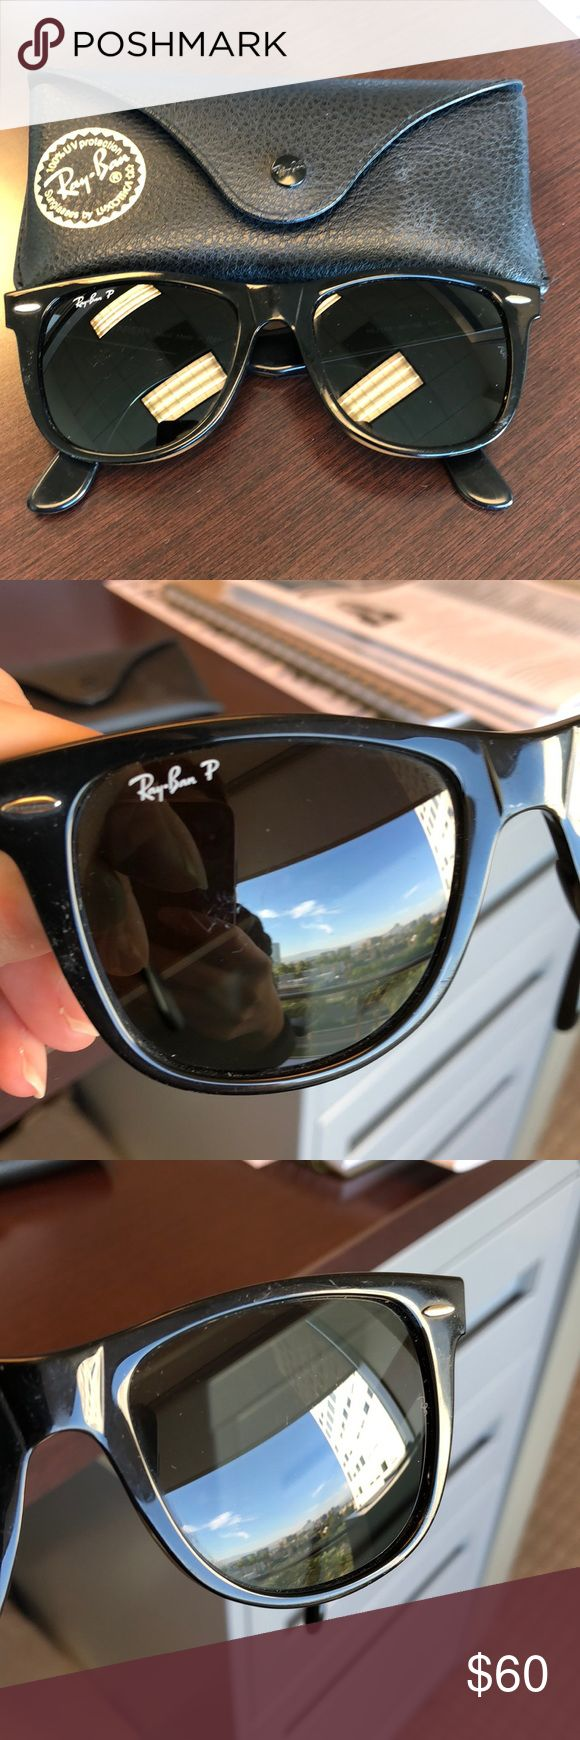 Ray-Ban Wayfarer Sunglasses Black Ray-Ban Wayfarer polarized sunglasses.In okay condition. Have some scratches (tried to show in the photos) Ray-Ban Accessories Sunglasses